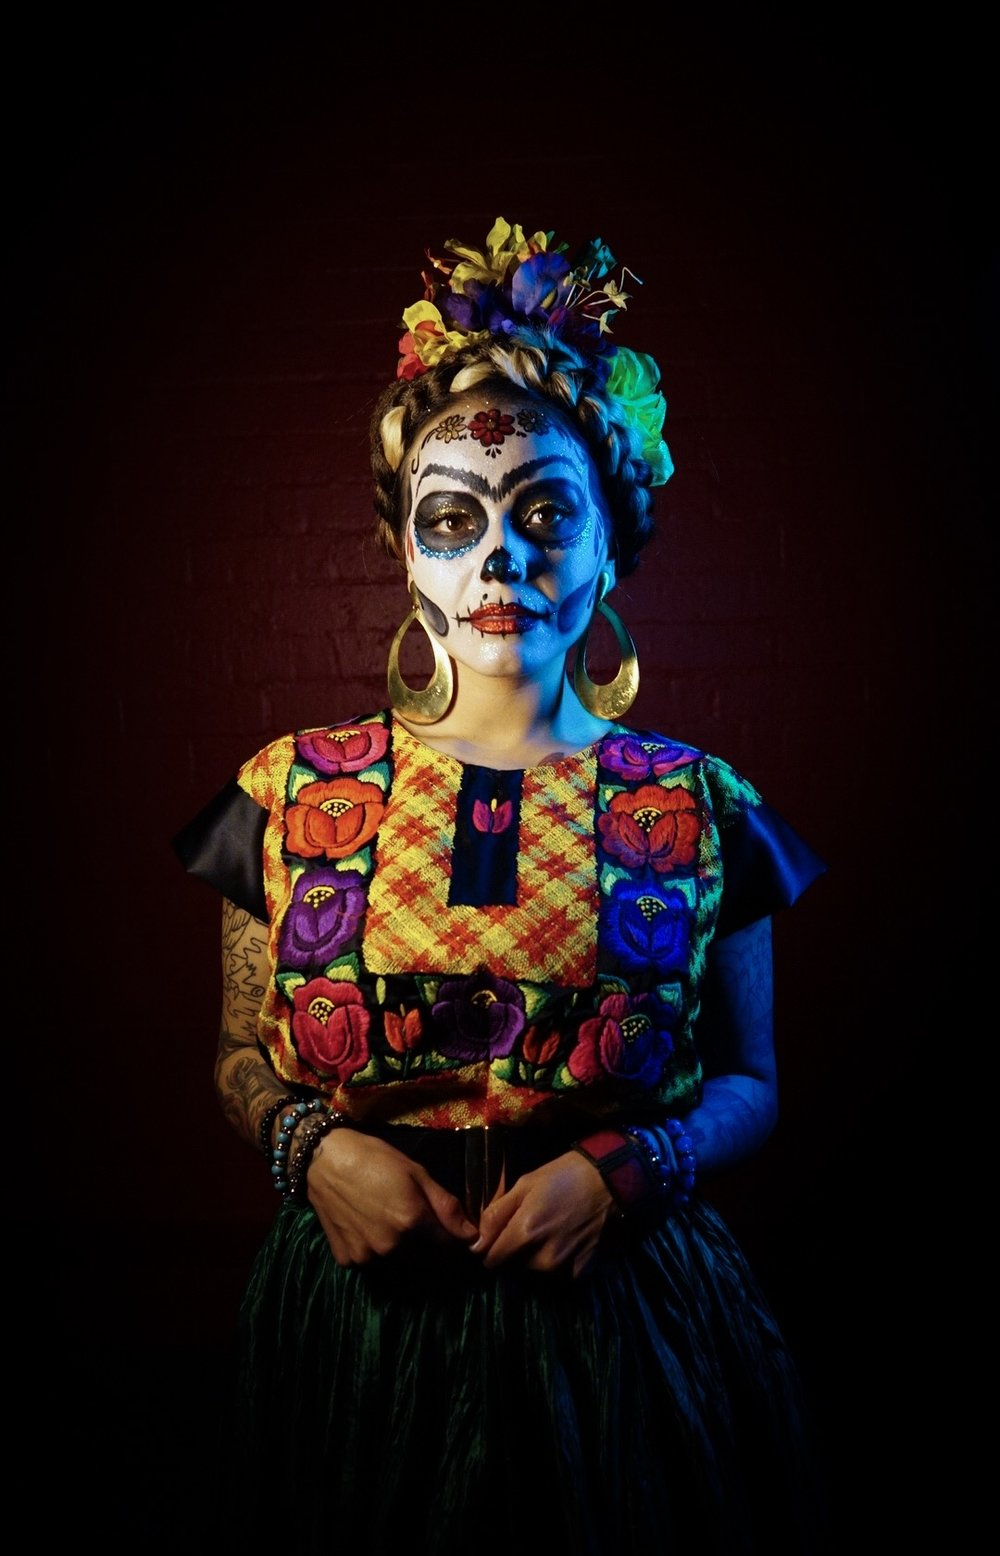 Photograph on display at Frogtown Brewery as part of Gus Mejia's Dia De Los Muertos Photo Exhibition